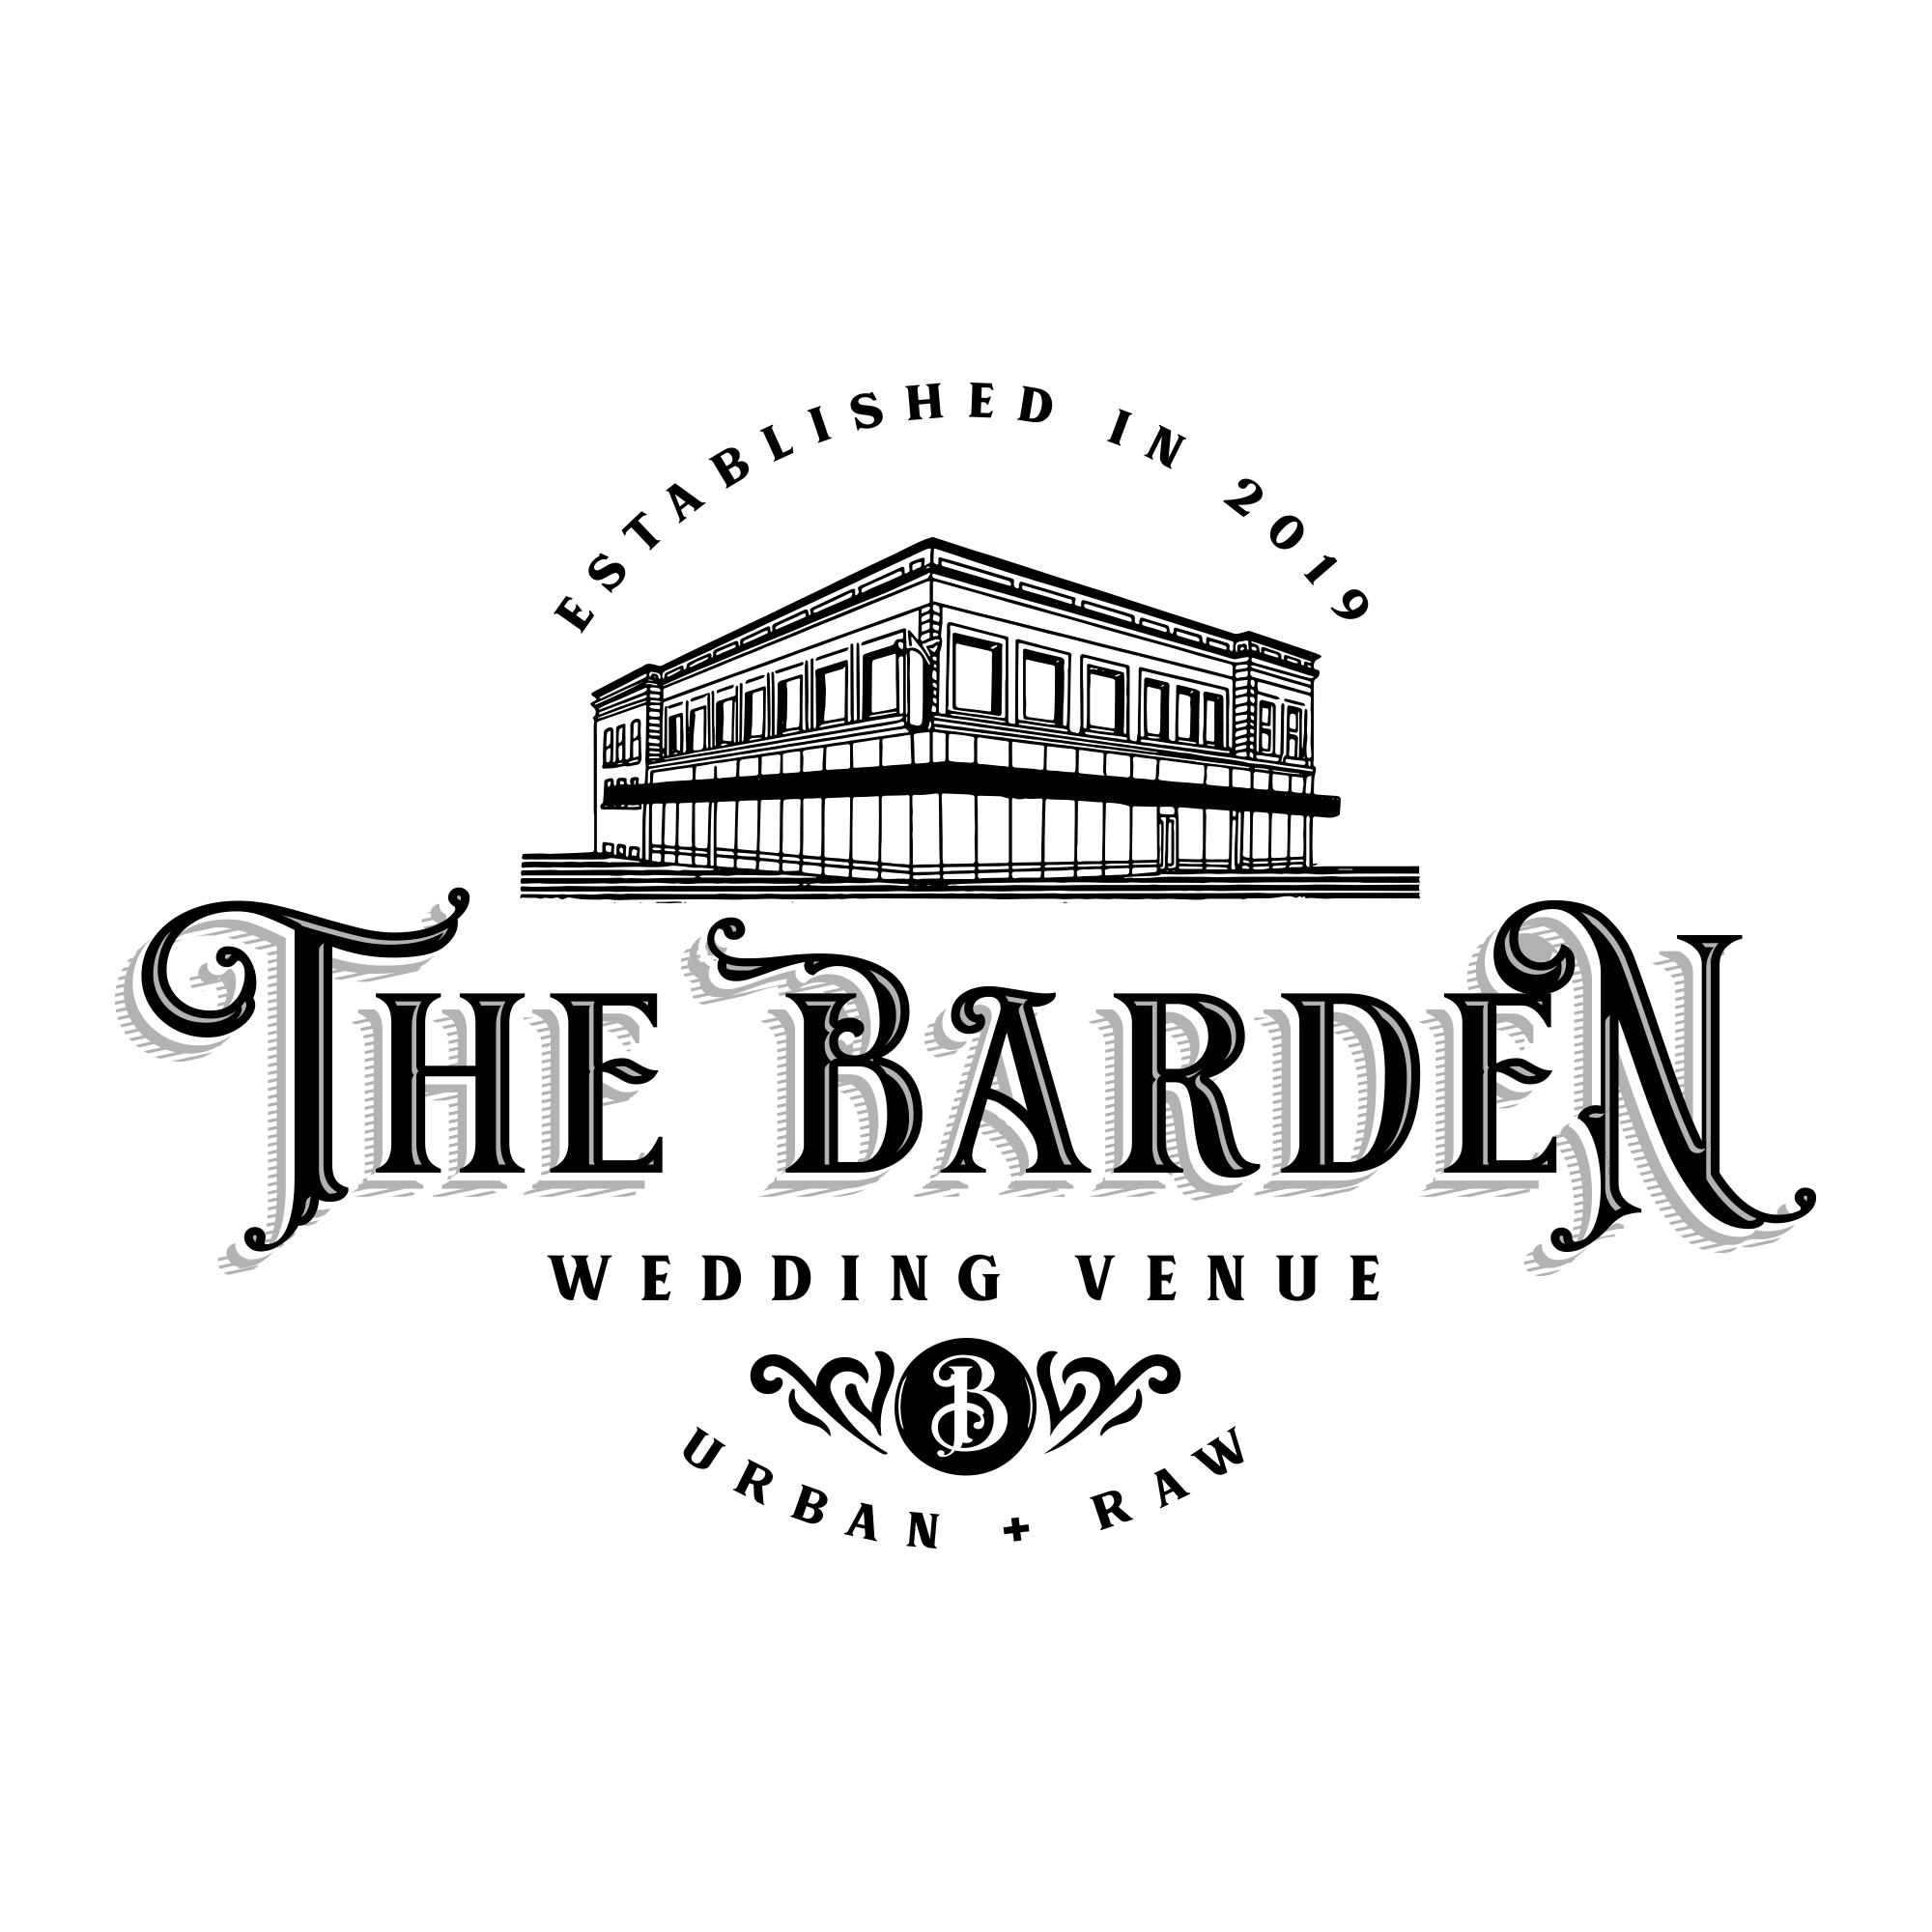 Design an urban, raw and sophisticated logo/brand pack for the historic Barden wedding & event venue